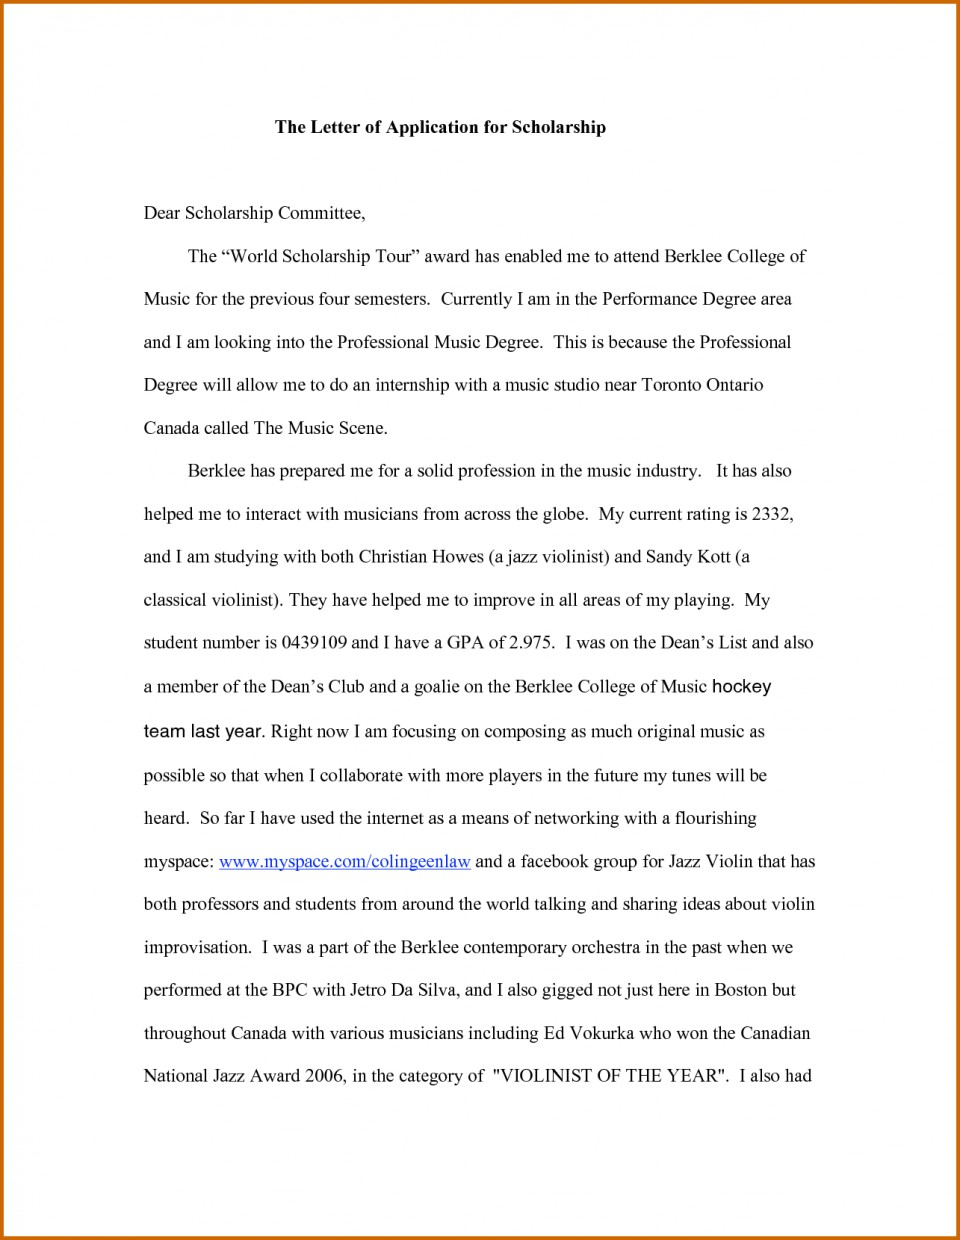 008 What To Write In Scholarship Essay Writer My How Personal Statement For Scholarships Application Good Shocking 2018 Canada 2019 No High School Juniors 960